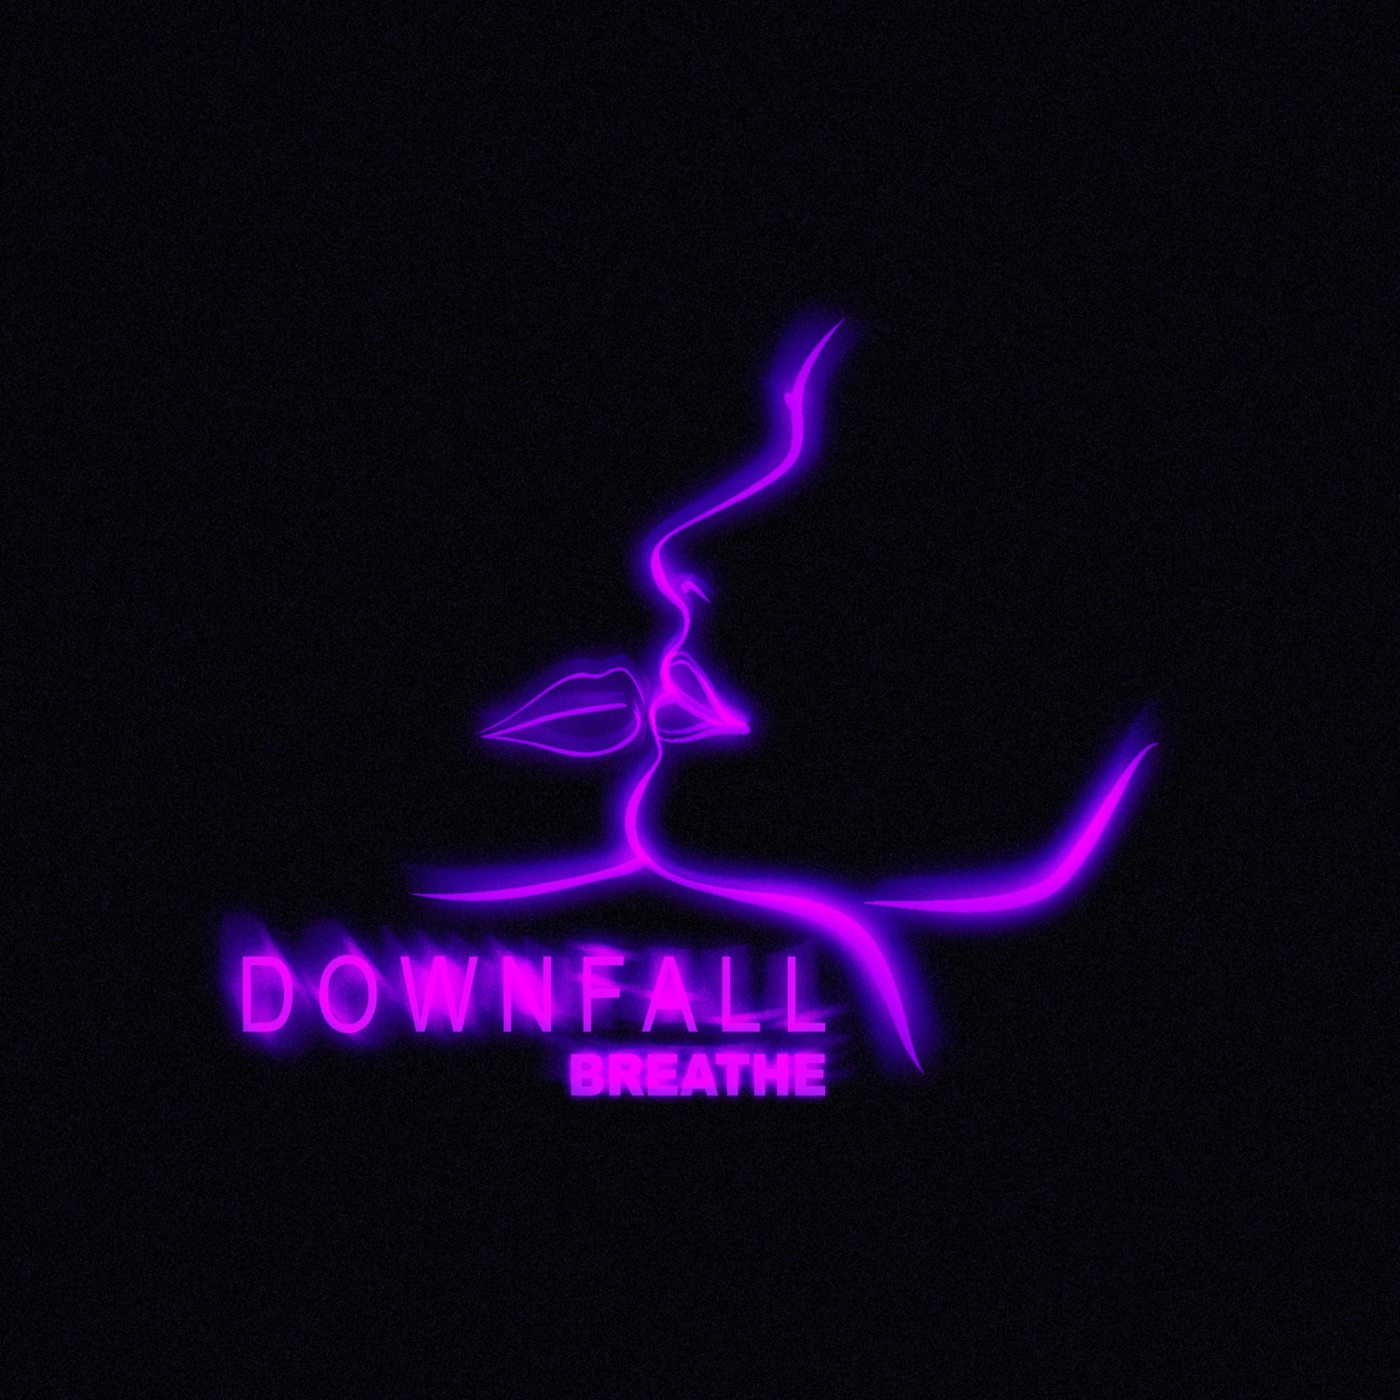 Downfall - Breathe (2019)